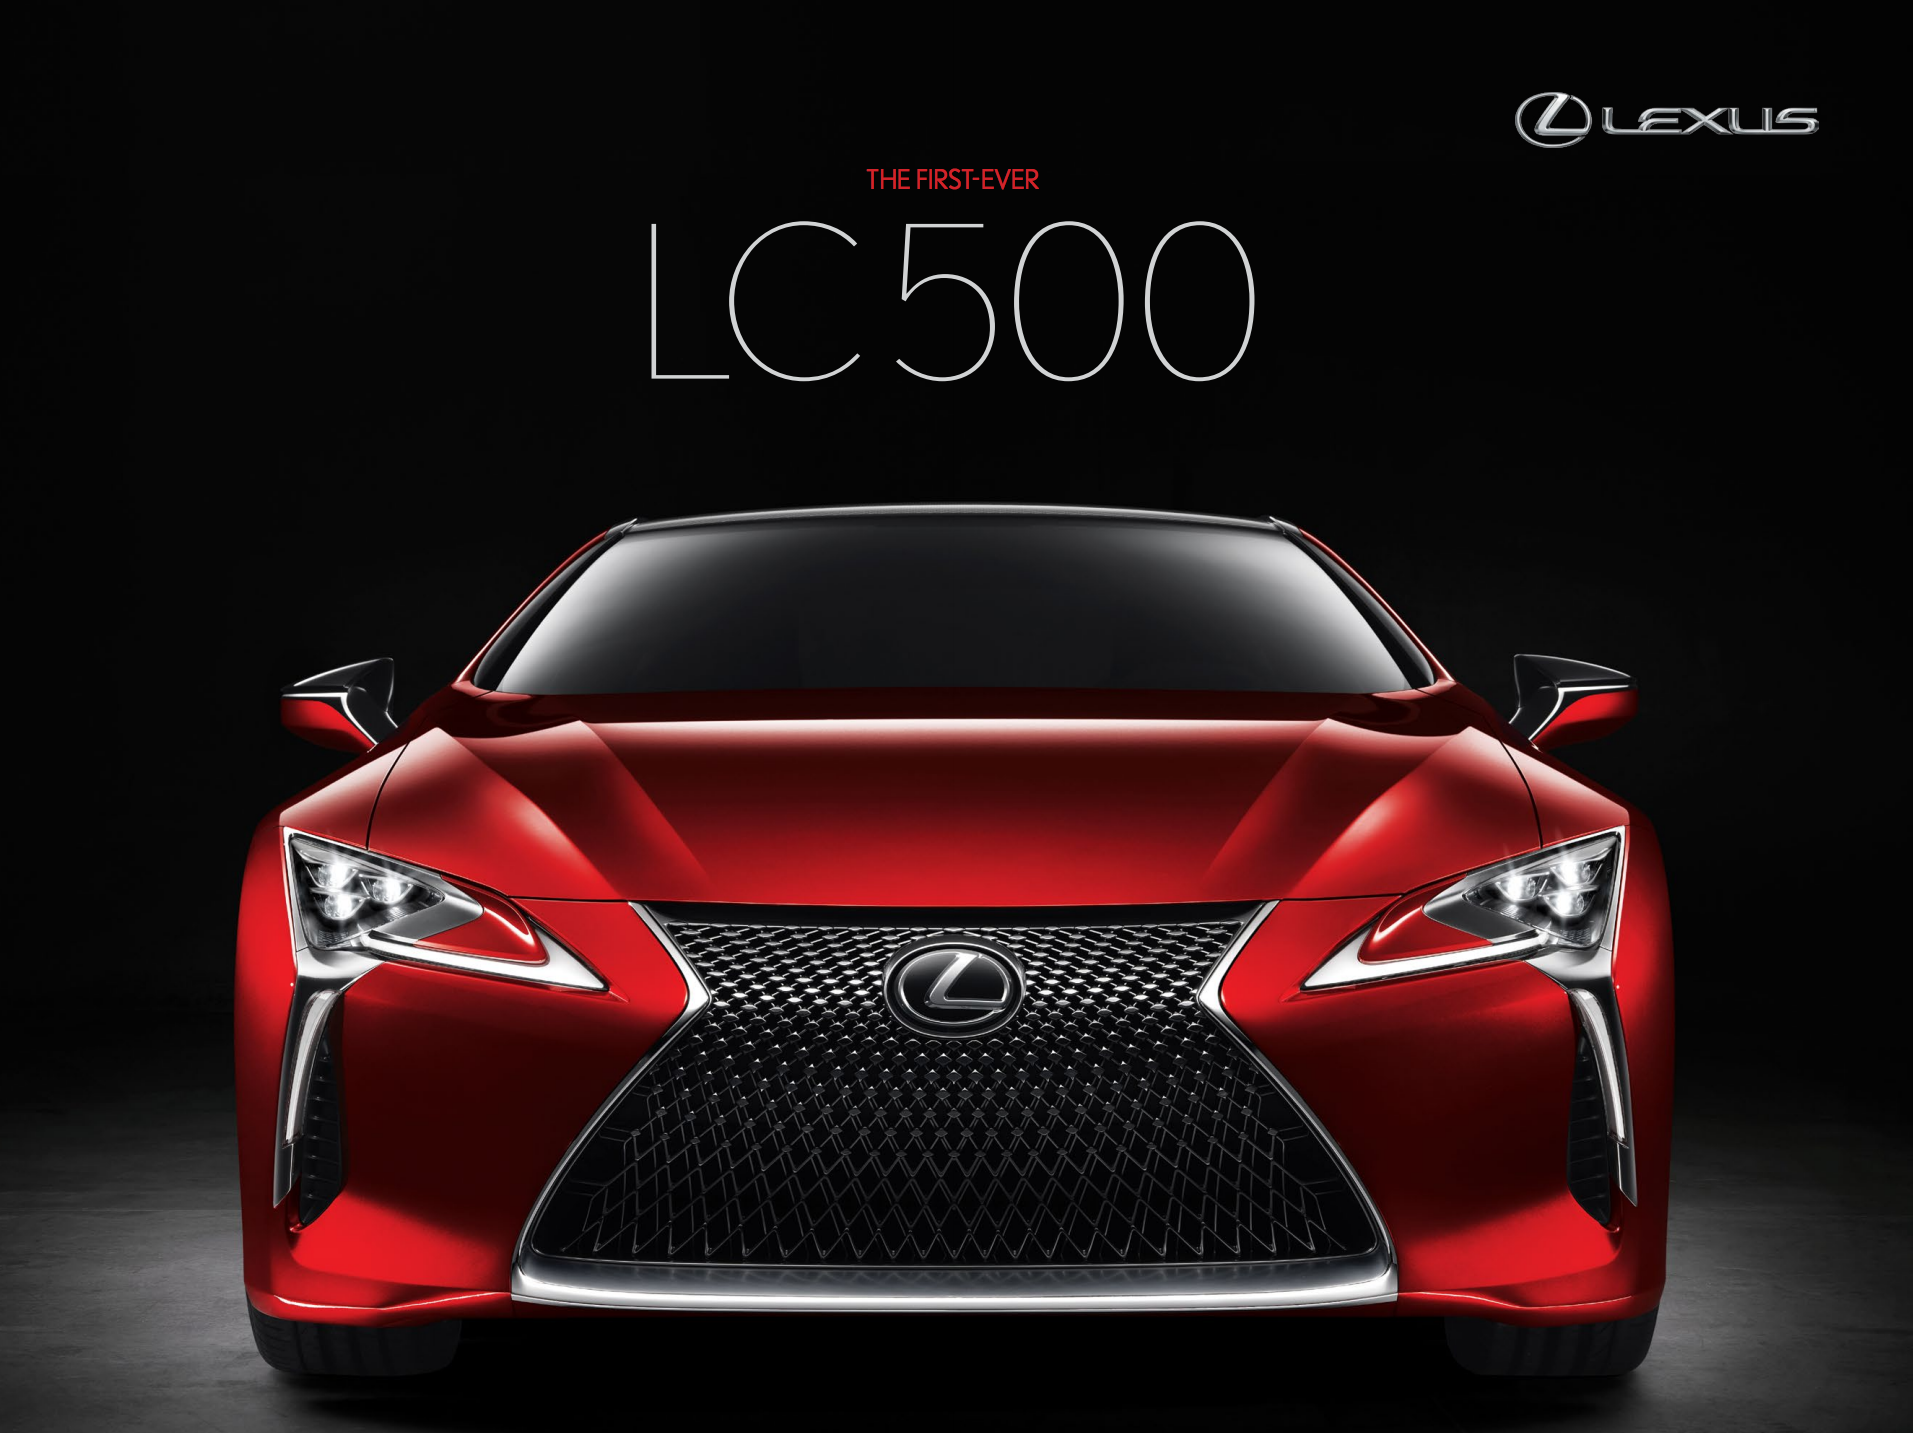 the to eng offers has out hero lex lc from special today lexus kuni available find options offer shown what